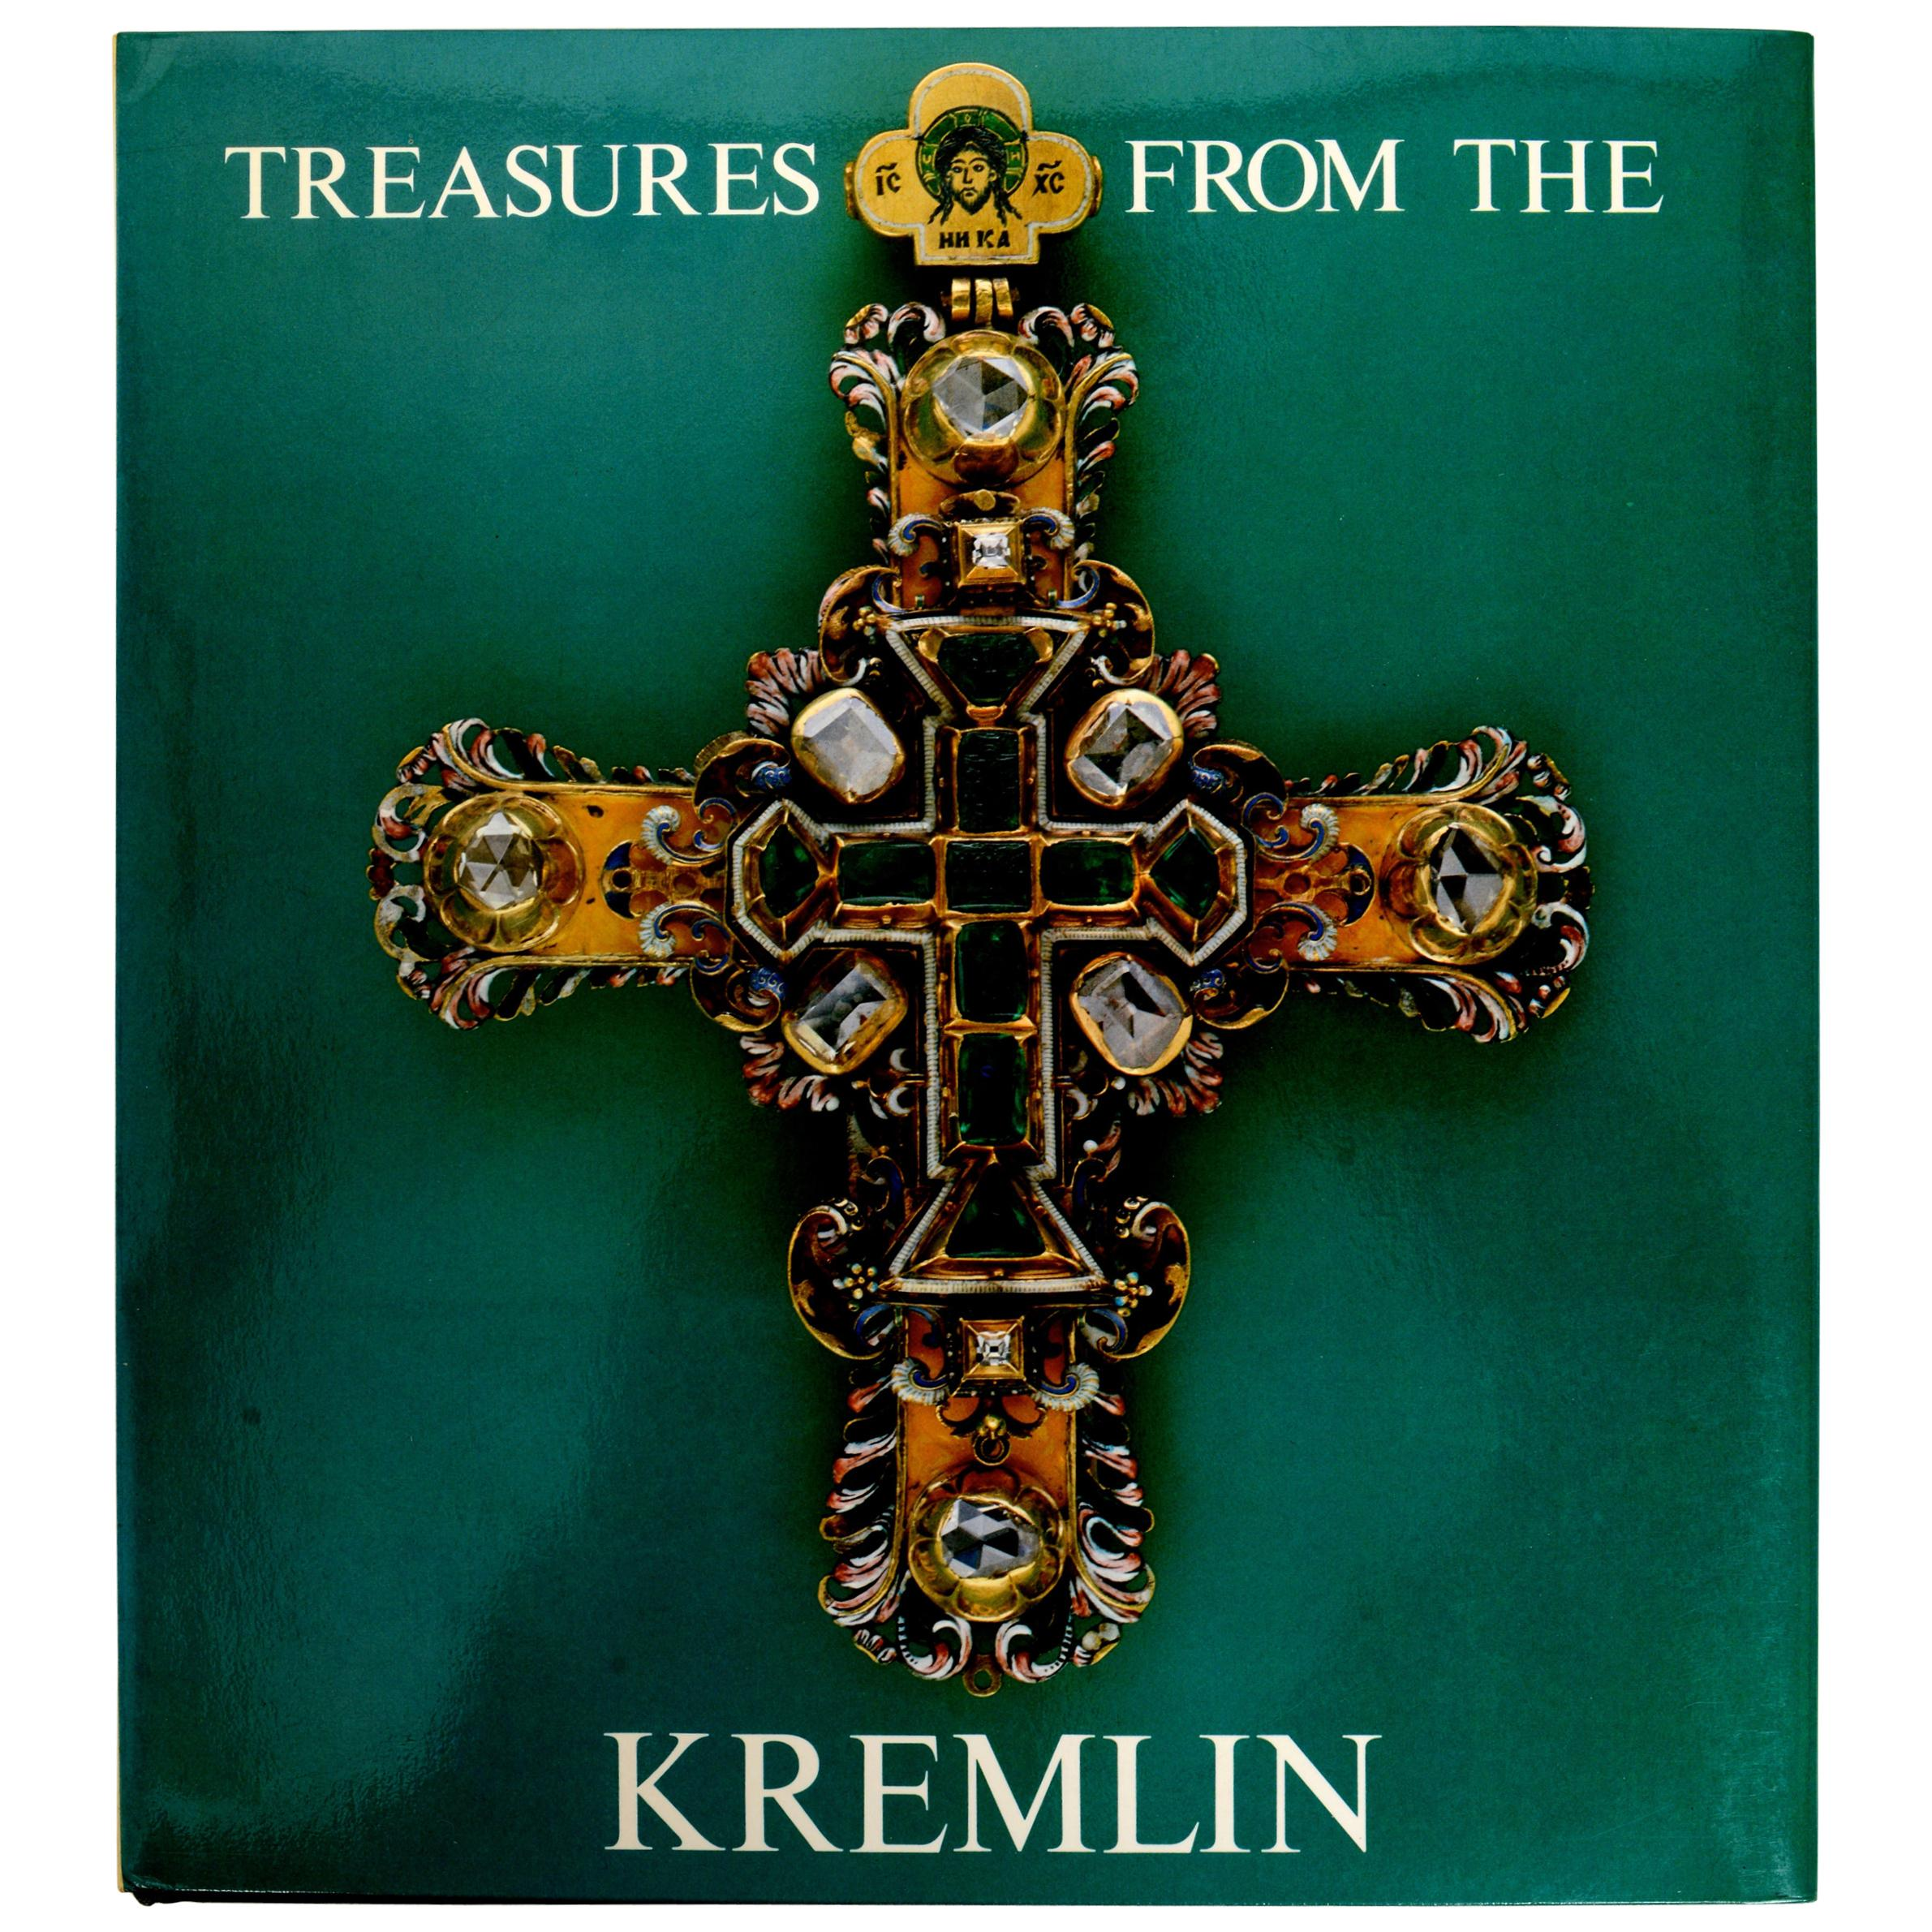 Treasures from the Kremlin, An Exhibition from State Museums of Moscow 1st Ed